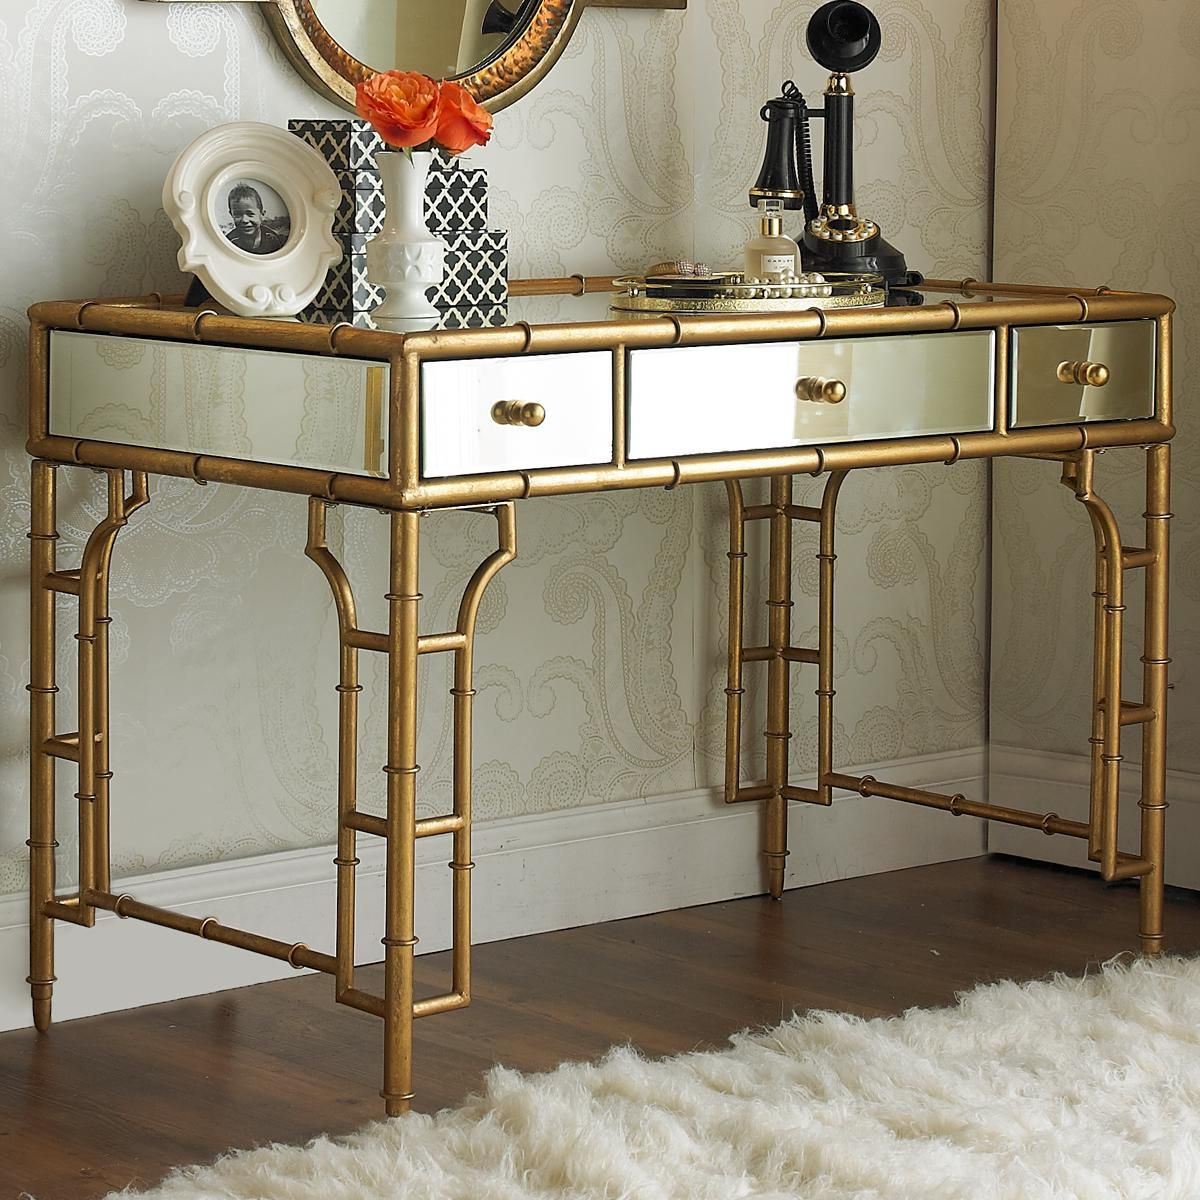 Metal Makeup Vanity Table Set Gold Bamboo And Mirror Vanity Desk More Mirror Glass